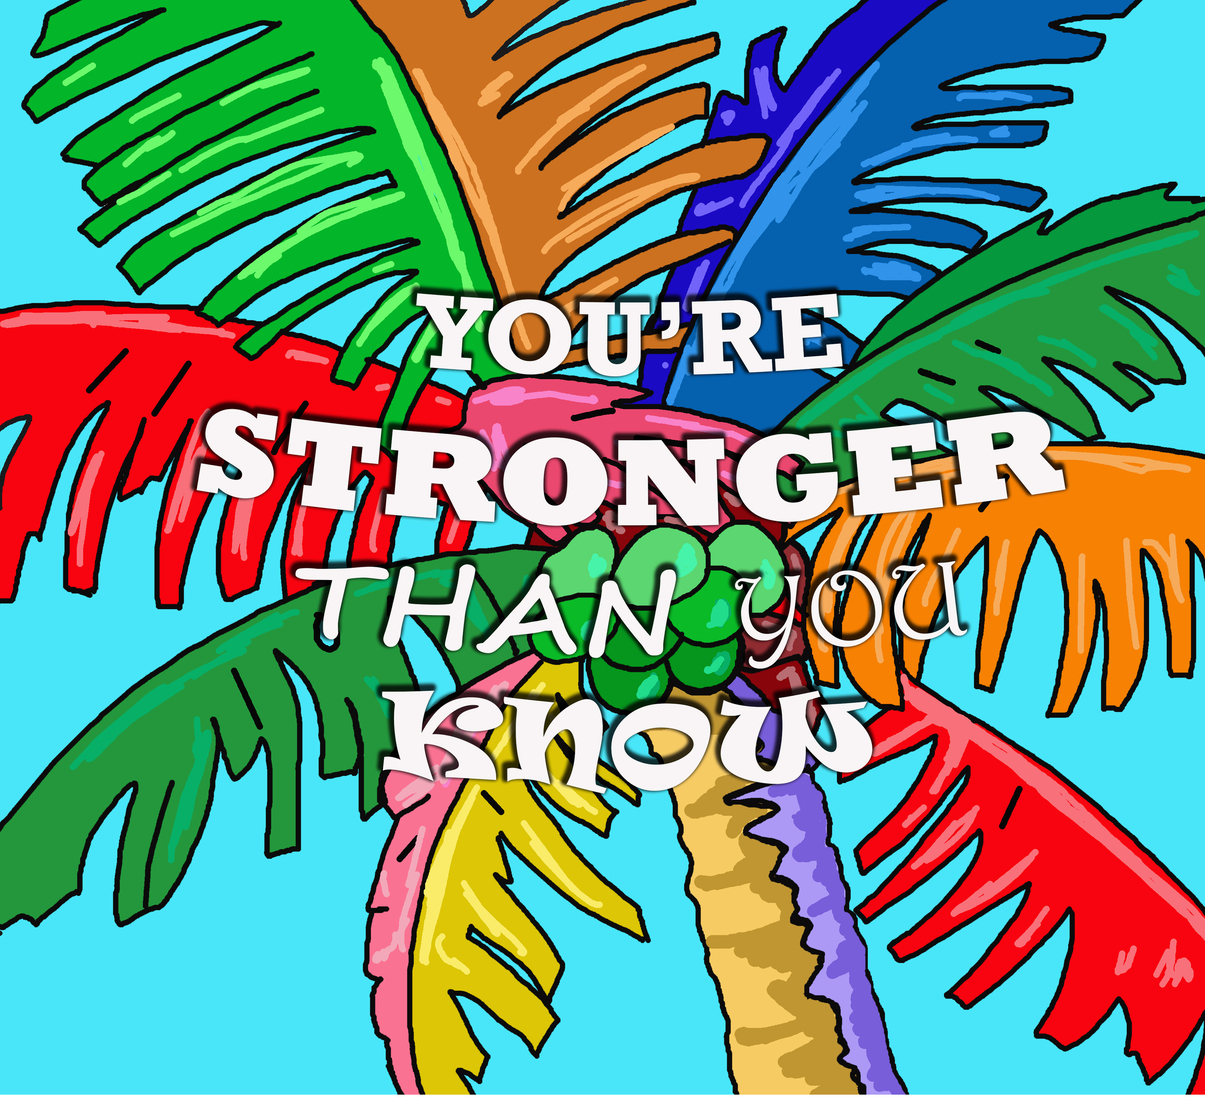 You're stronger than you know